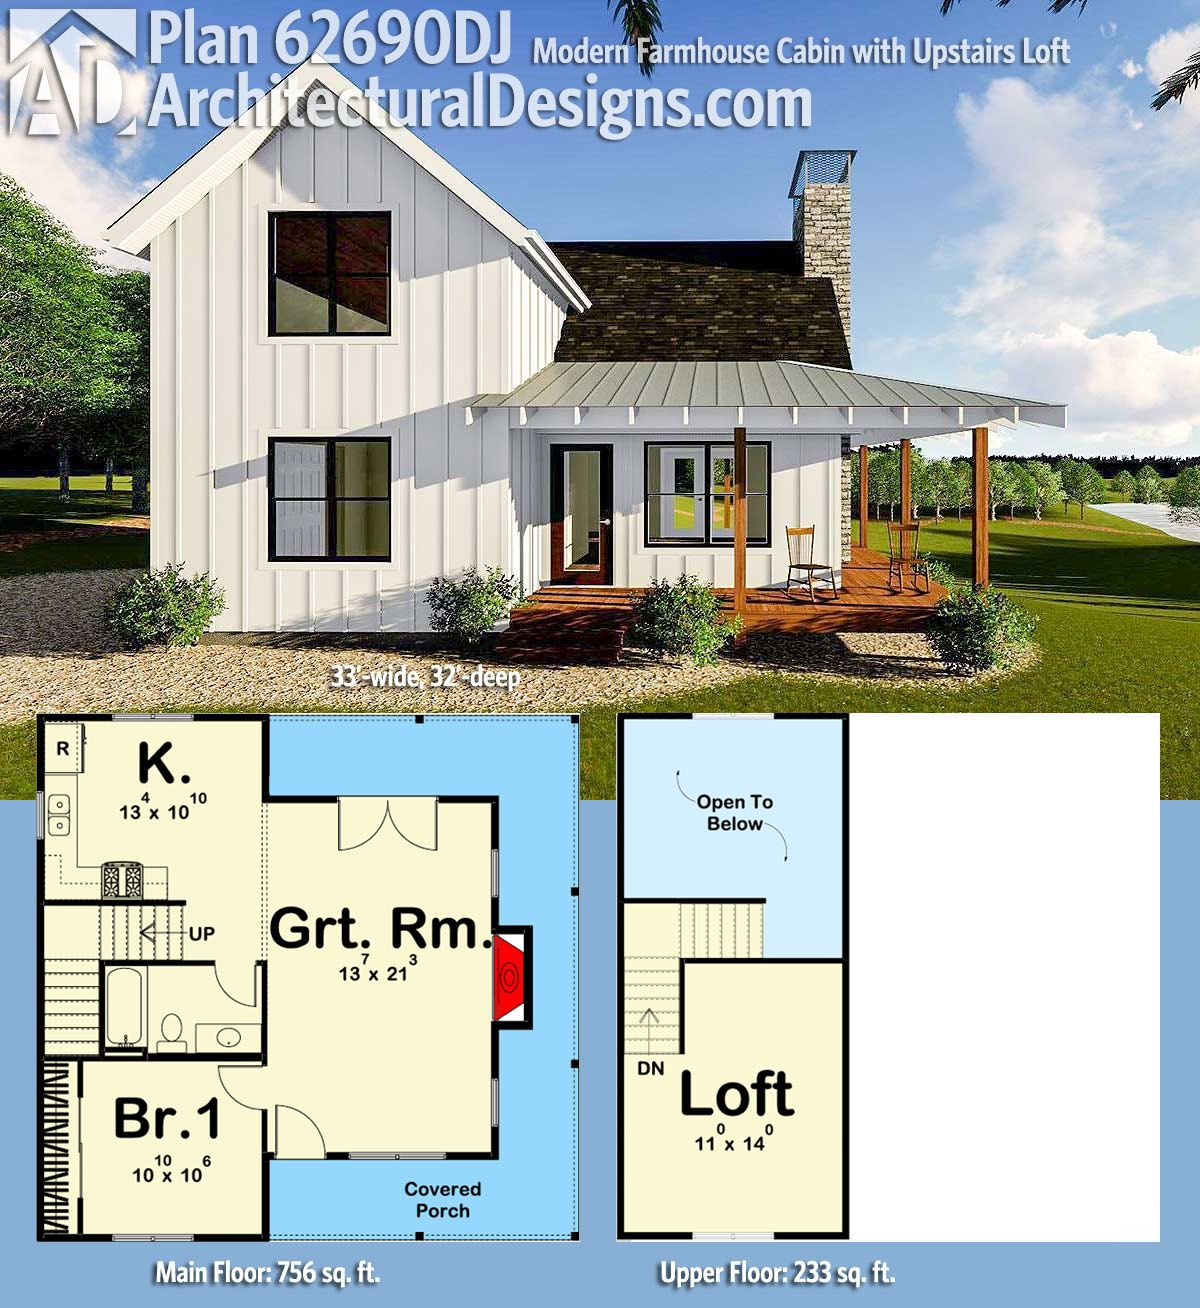 Modern Home Plans With Lofts: Plan 62690DJ: Modern Farmhouse Cabin With Upstairs Loft